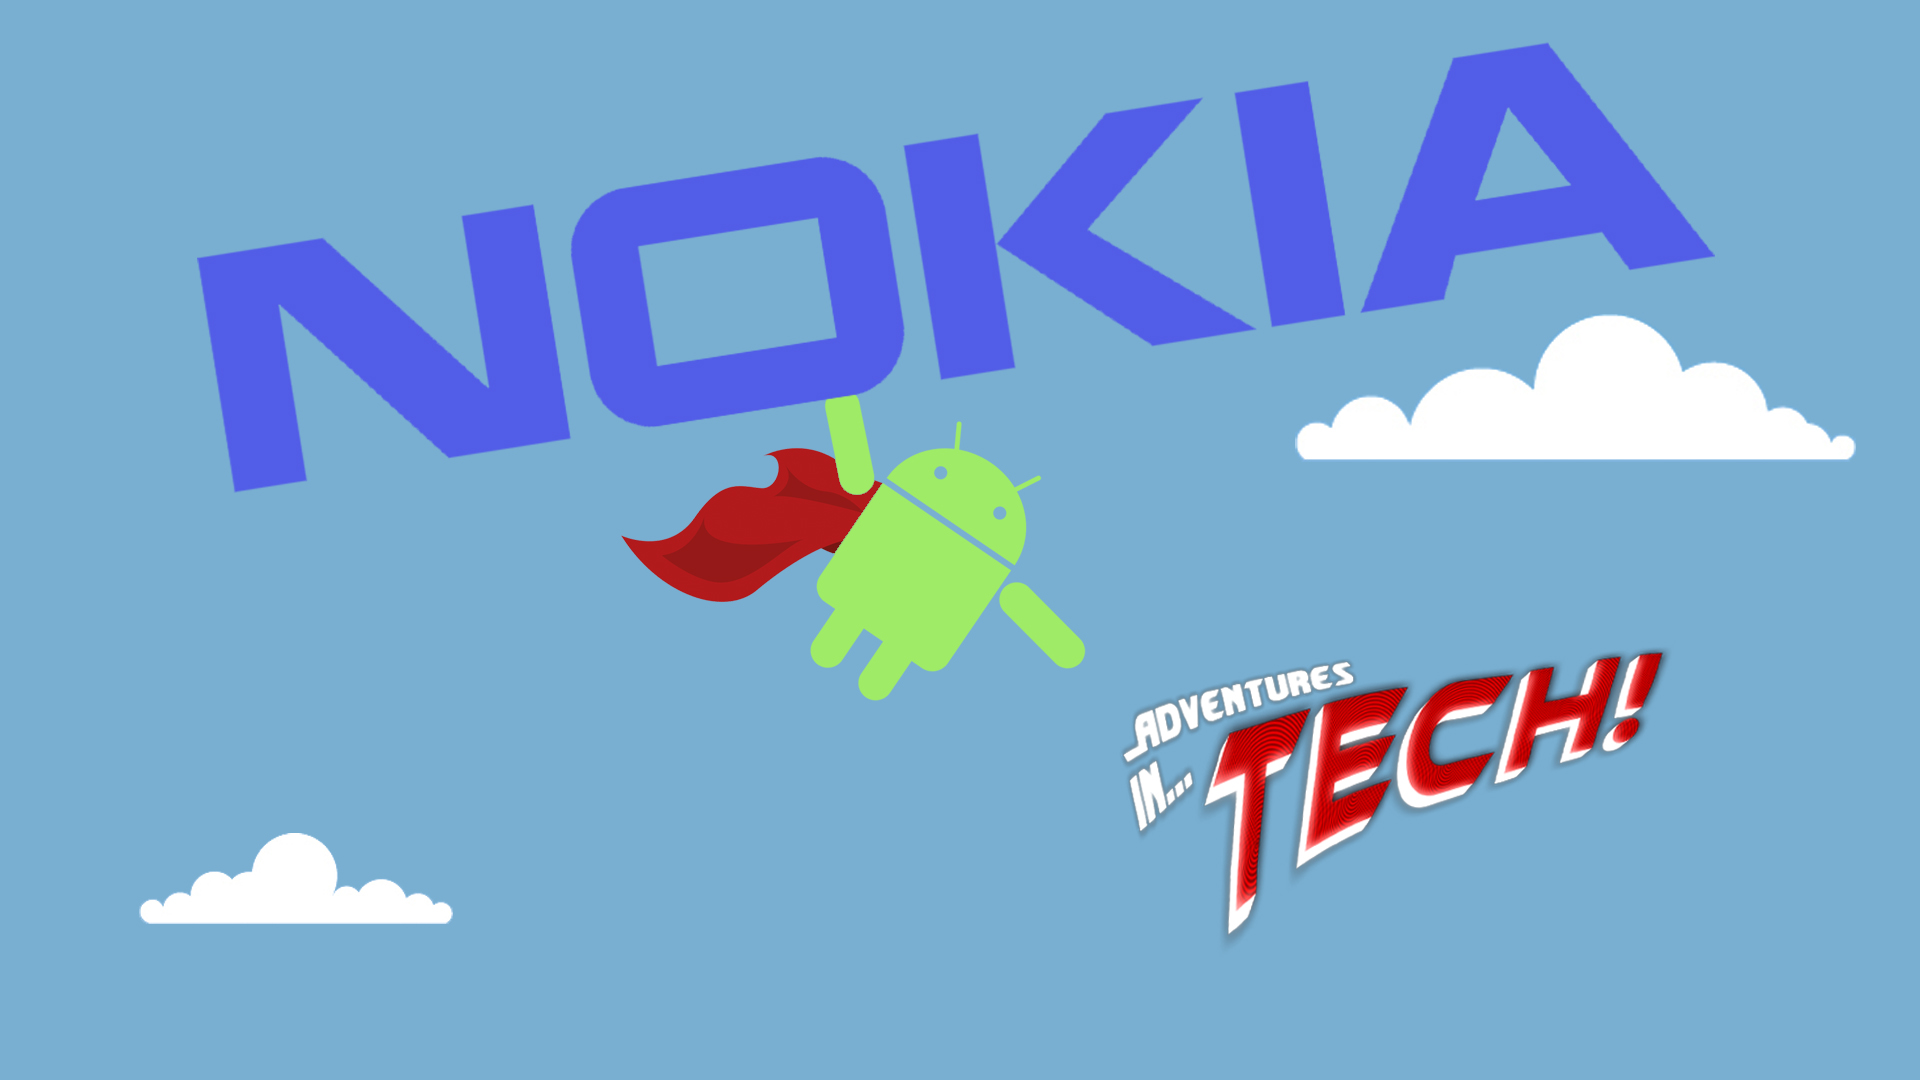 Video: Could Android have saved Nokia?